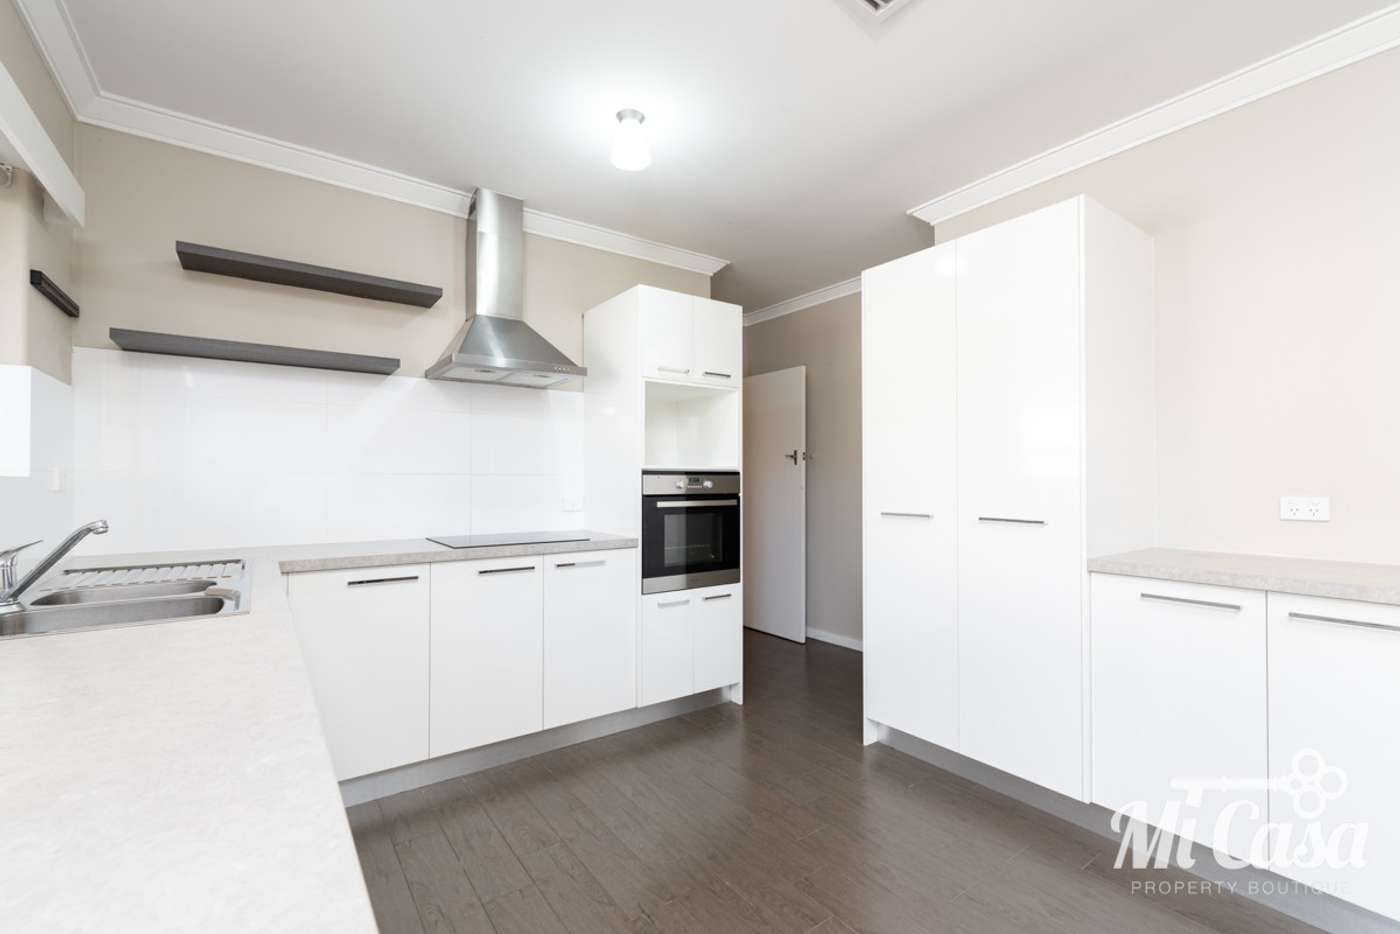 Seventh view of Homely house listing, 47 Donaldson Street, Queens Park WA 6107